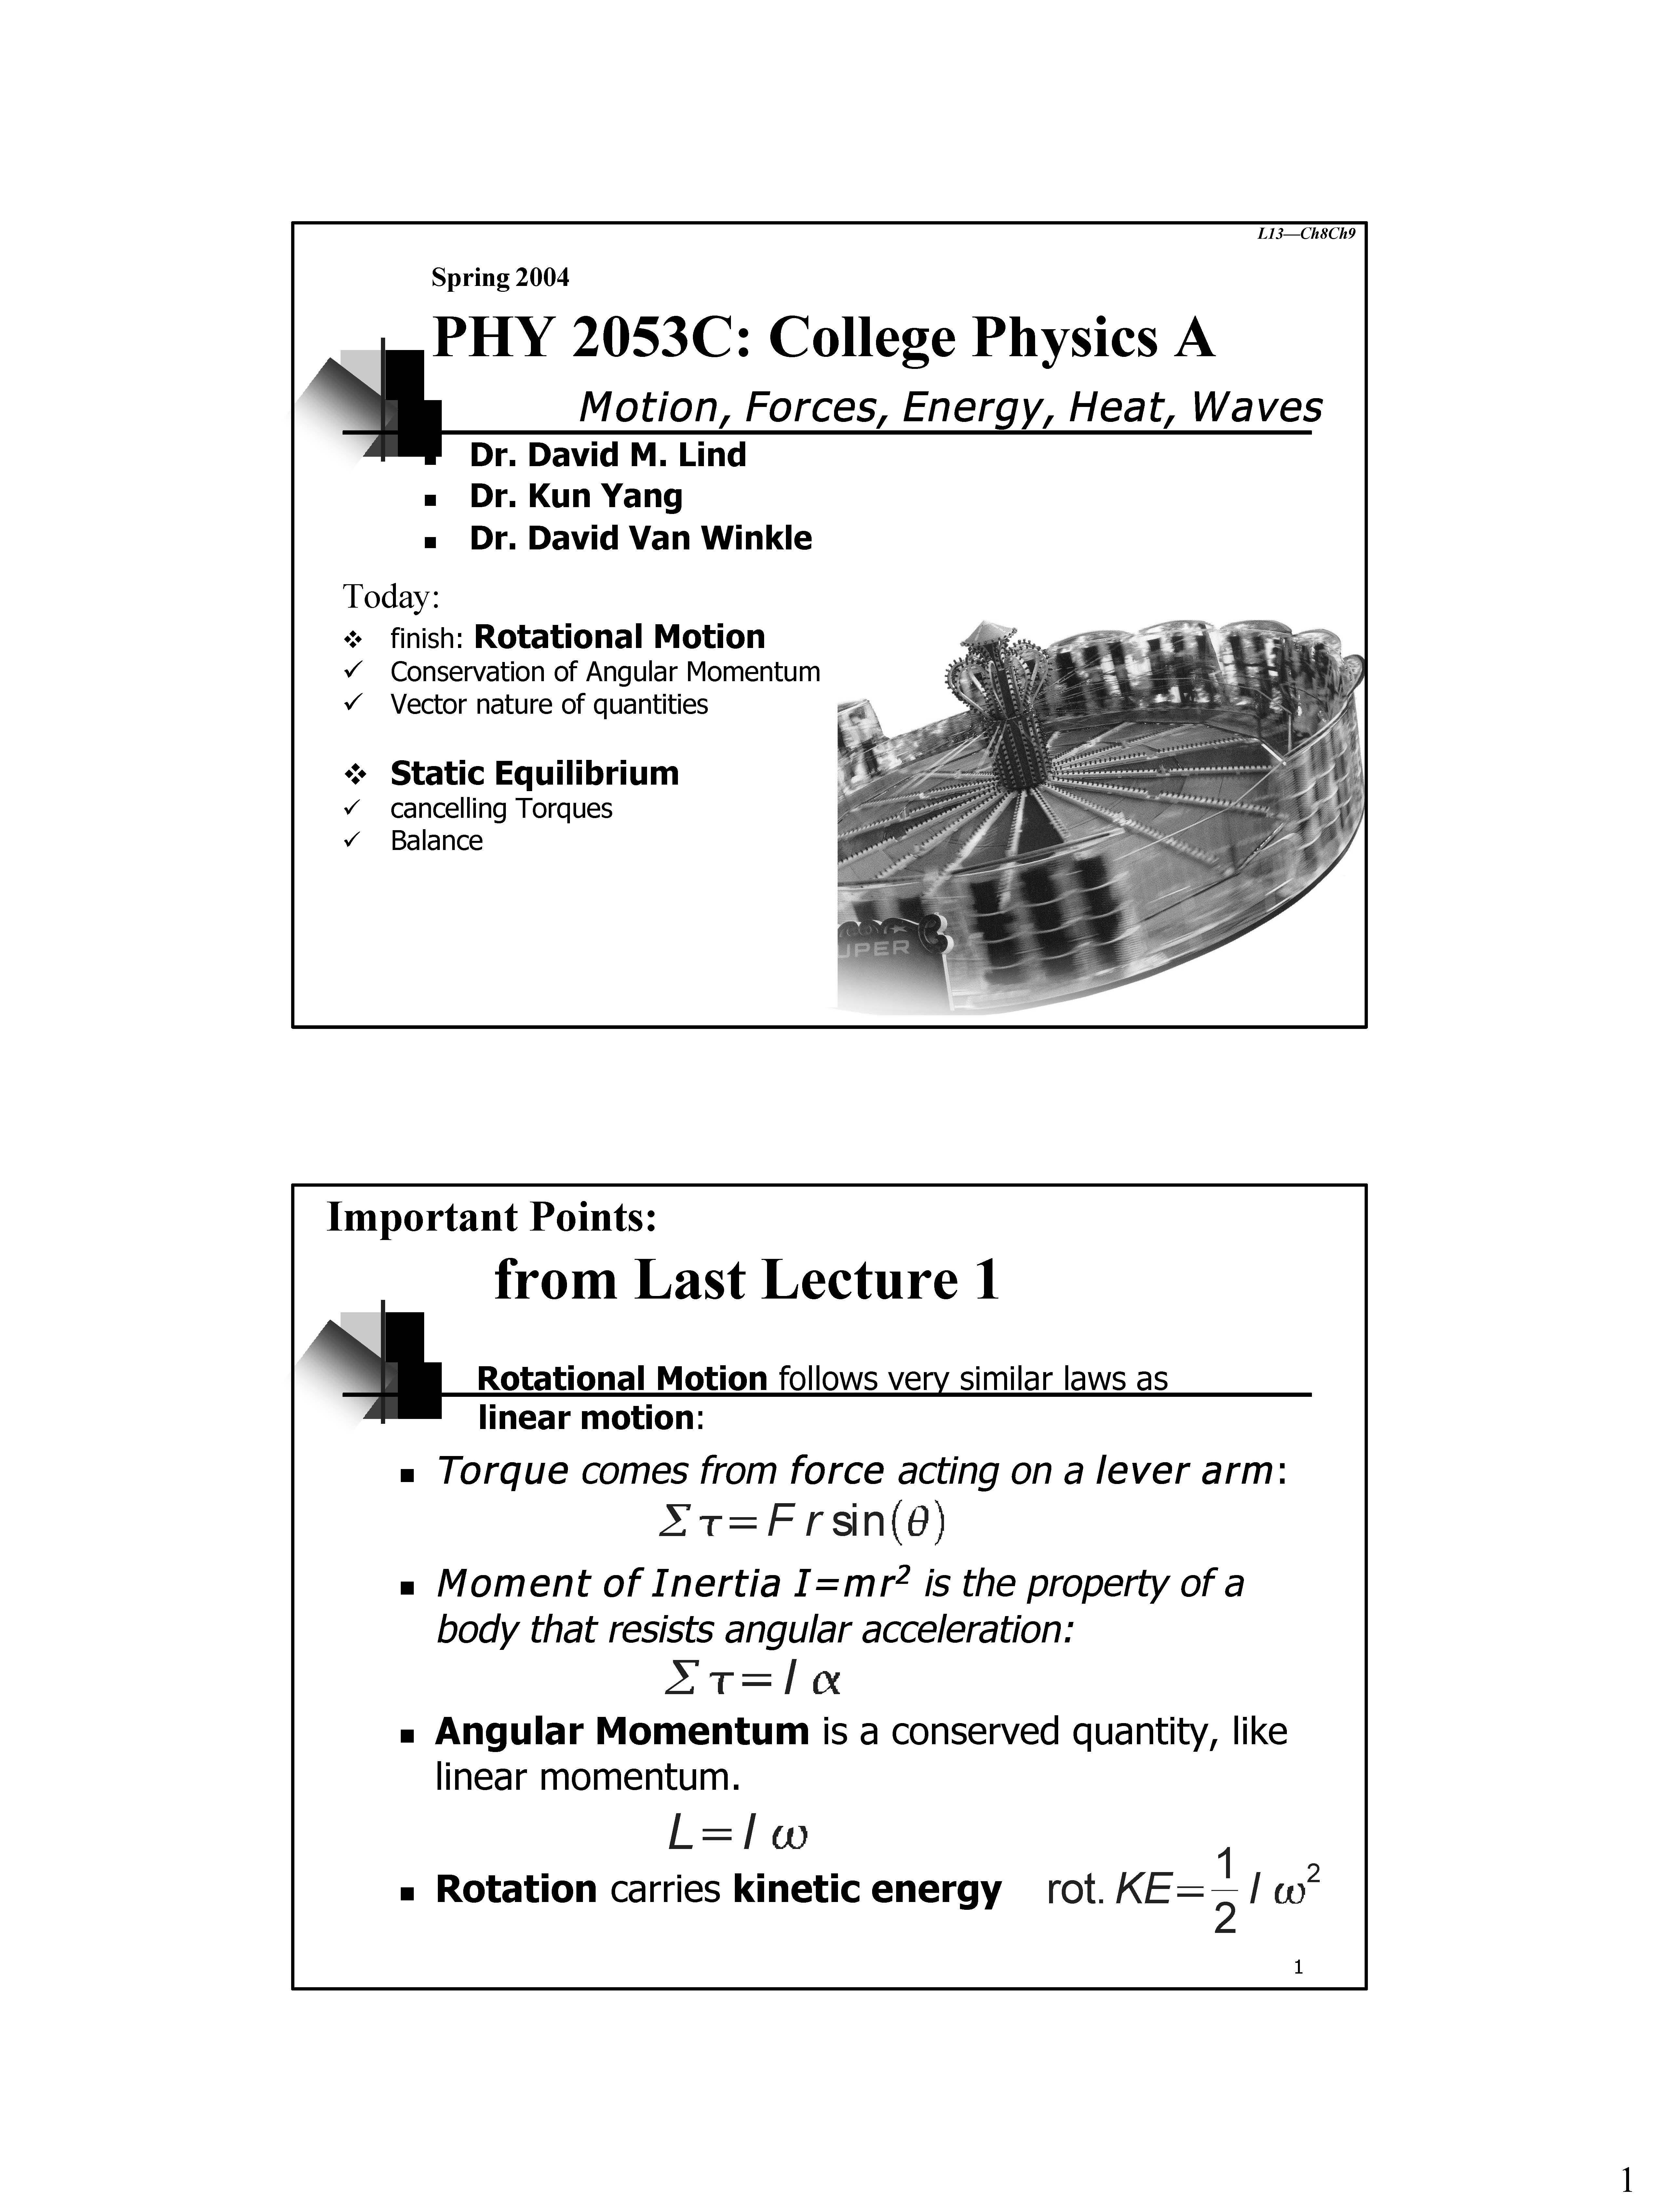 PHY - Class Notes - Week 1